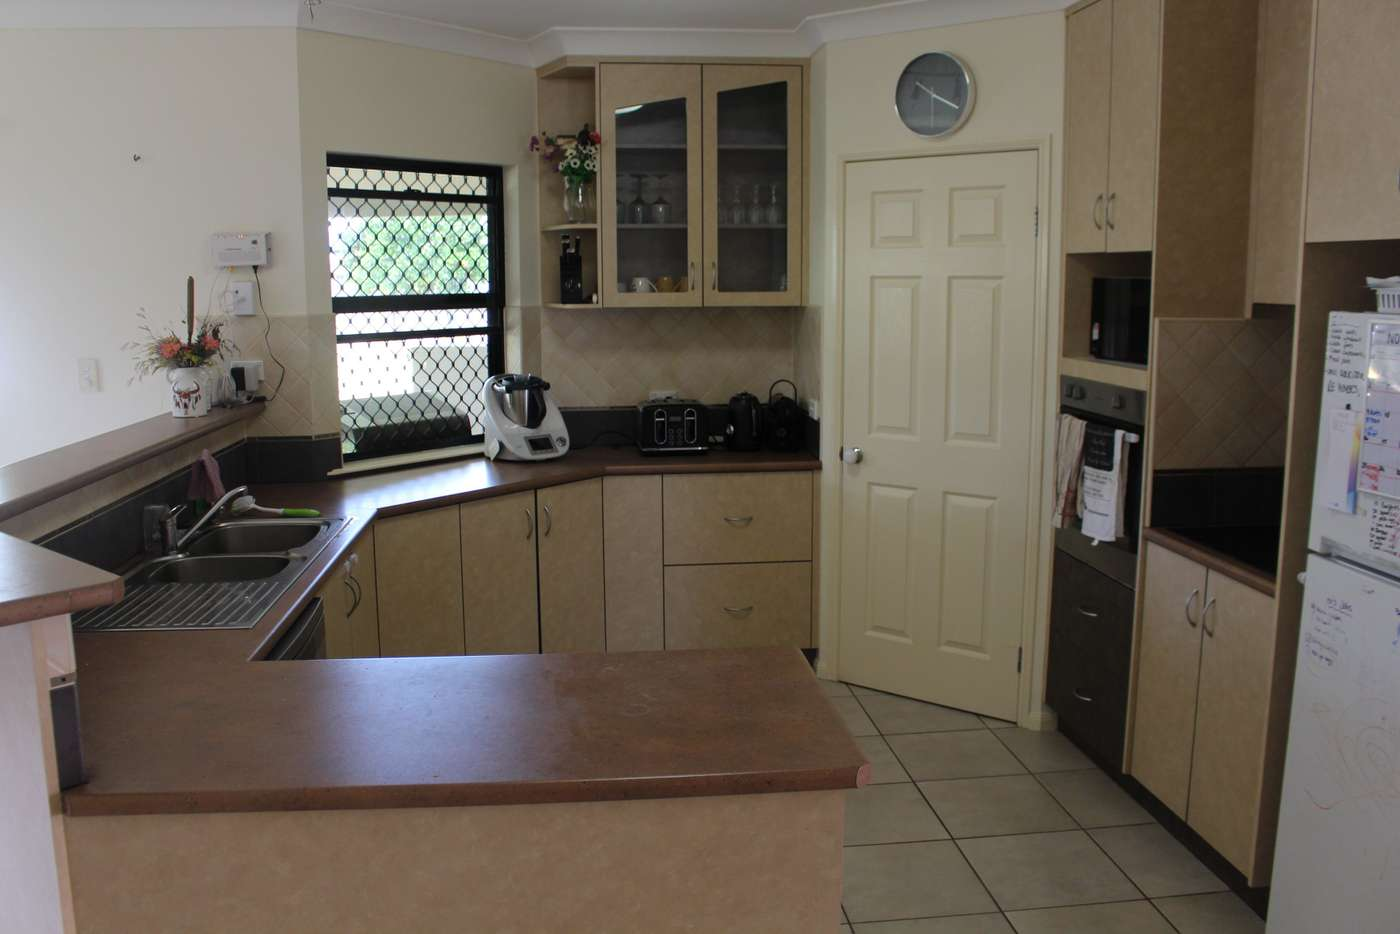 Seventh view of Homely house listing, Address available on request